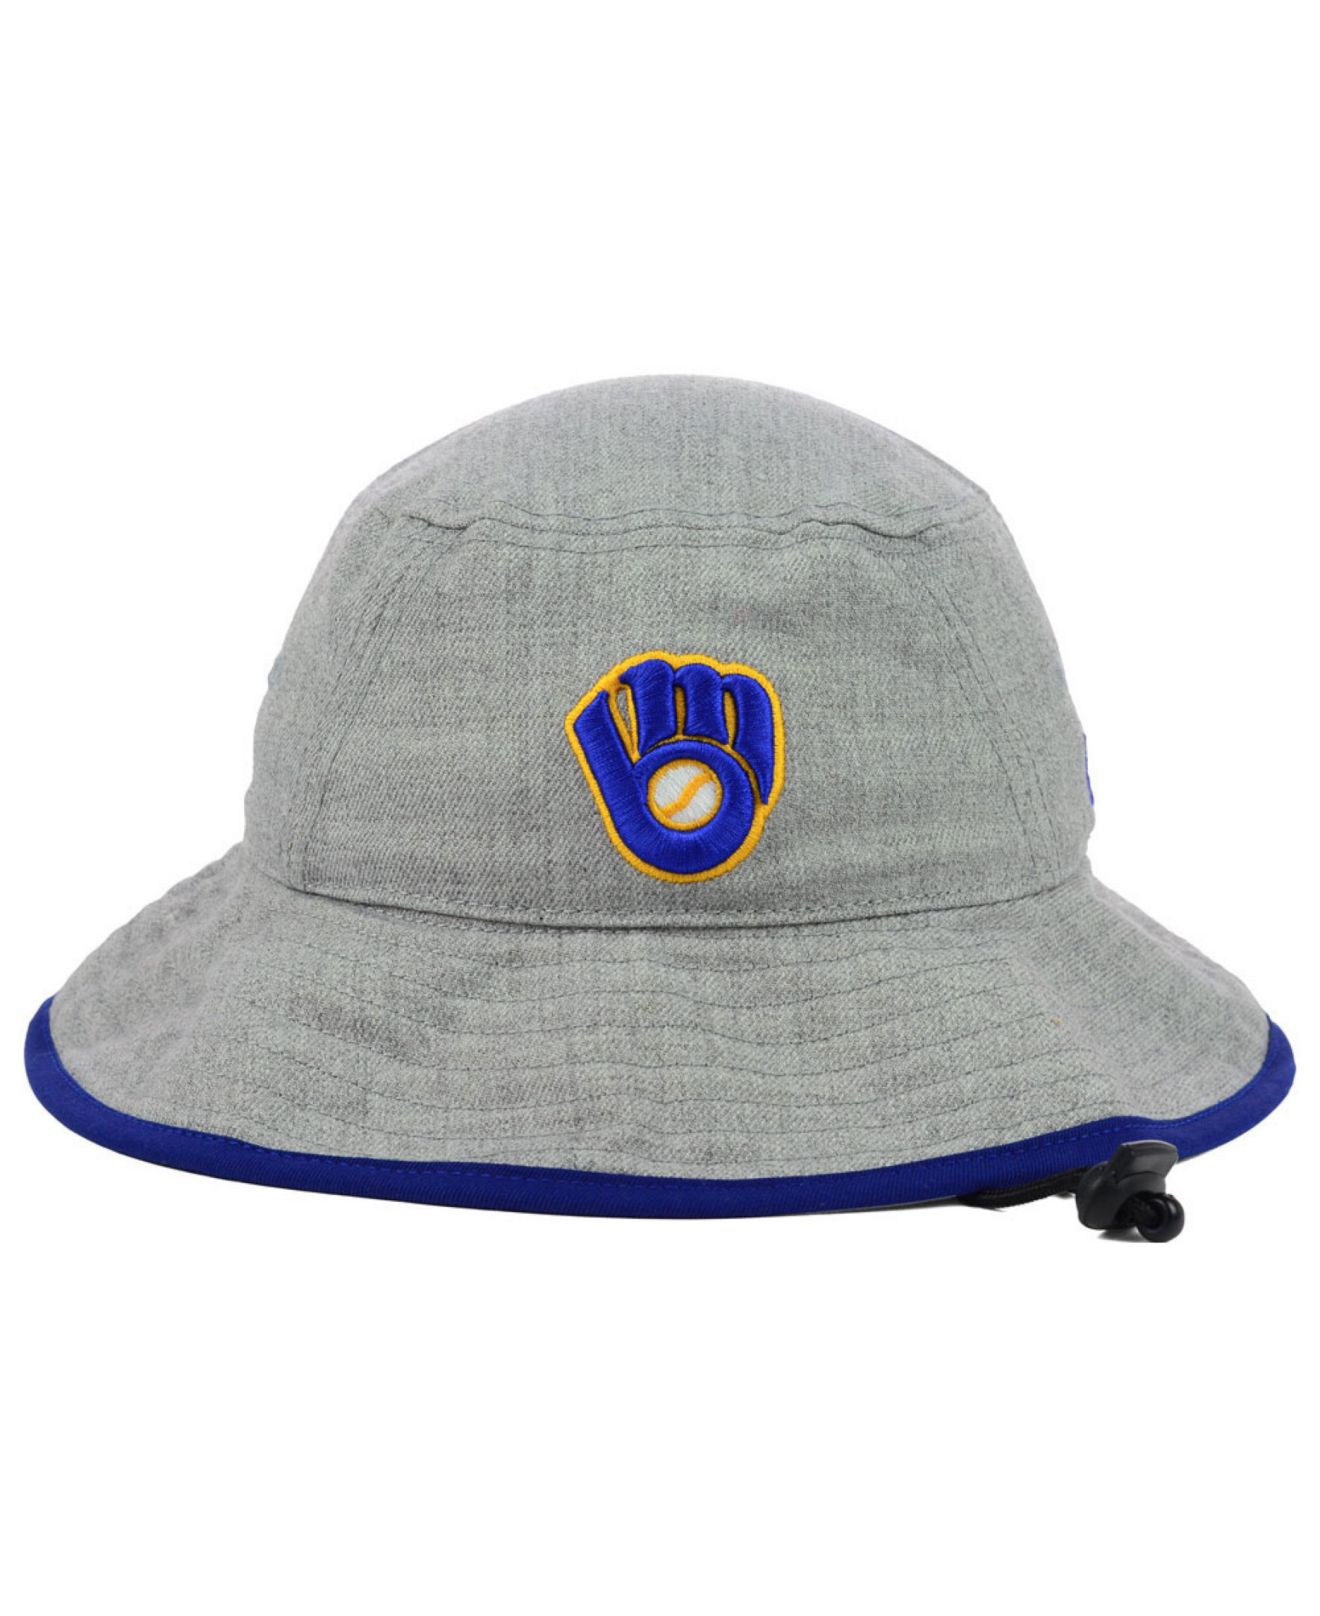 5ae10359a8f Lyst - KTZ Milwaukee Brewers Heather Tipped Bucket Hat in Gray for Men